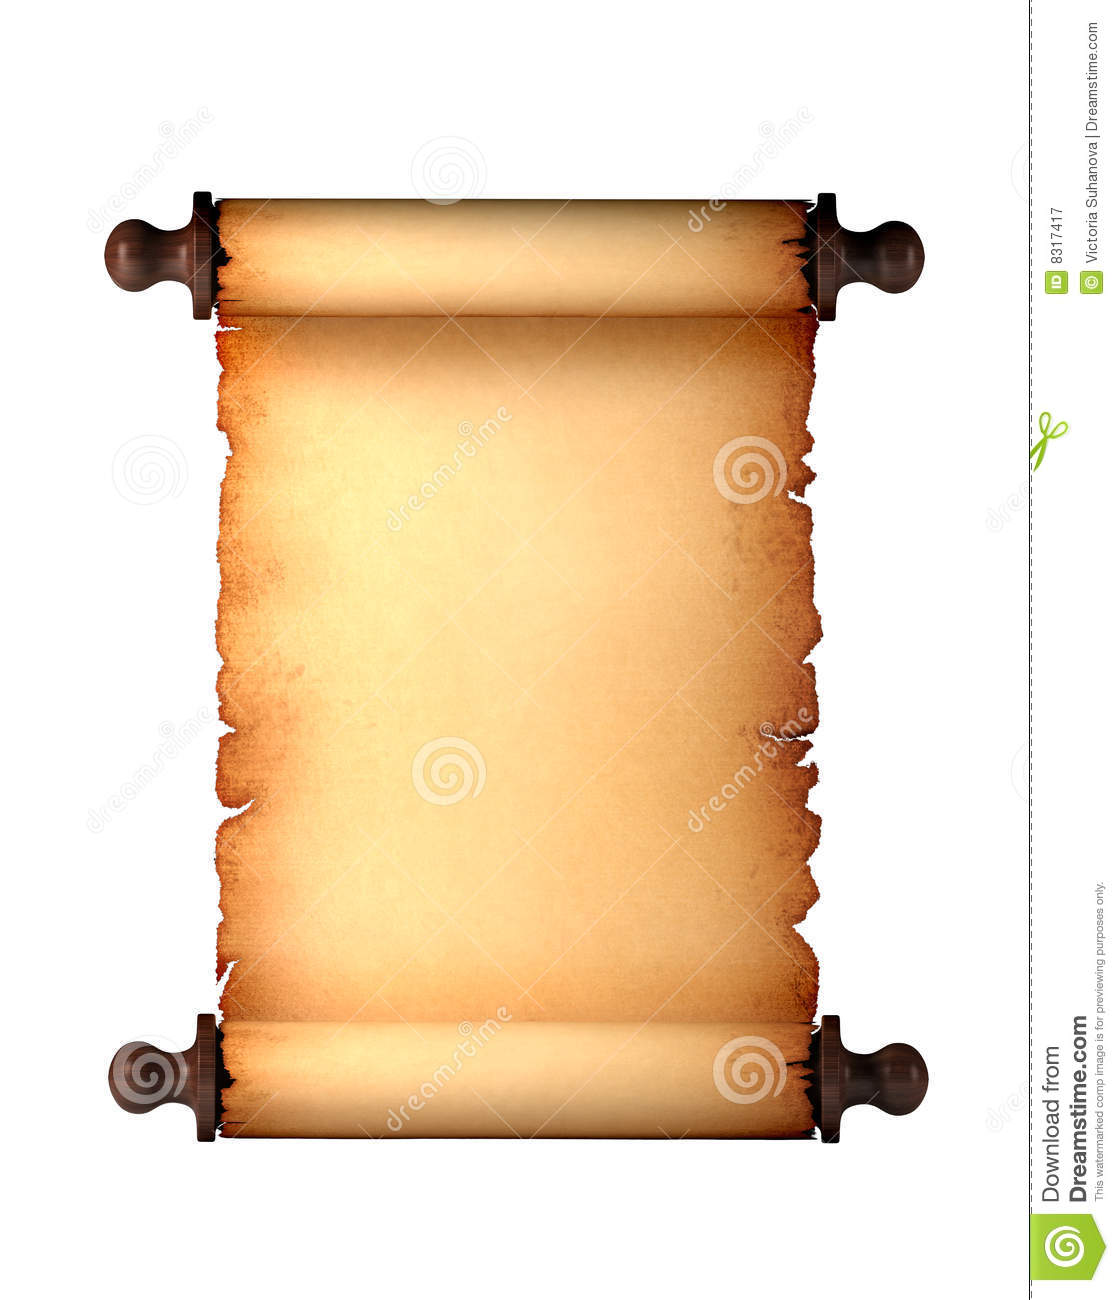 Antique Scrollimgs: Paper Antique Scroll Royalty Free Stock Photography